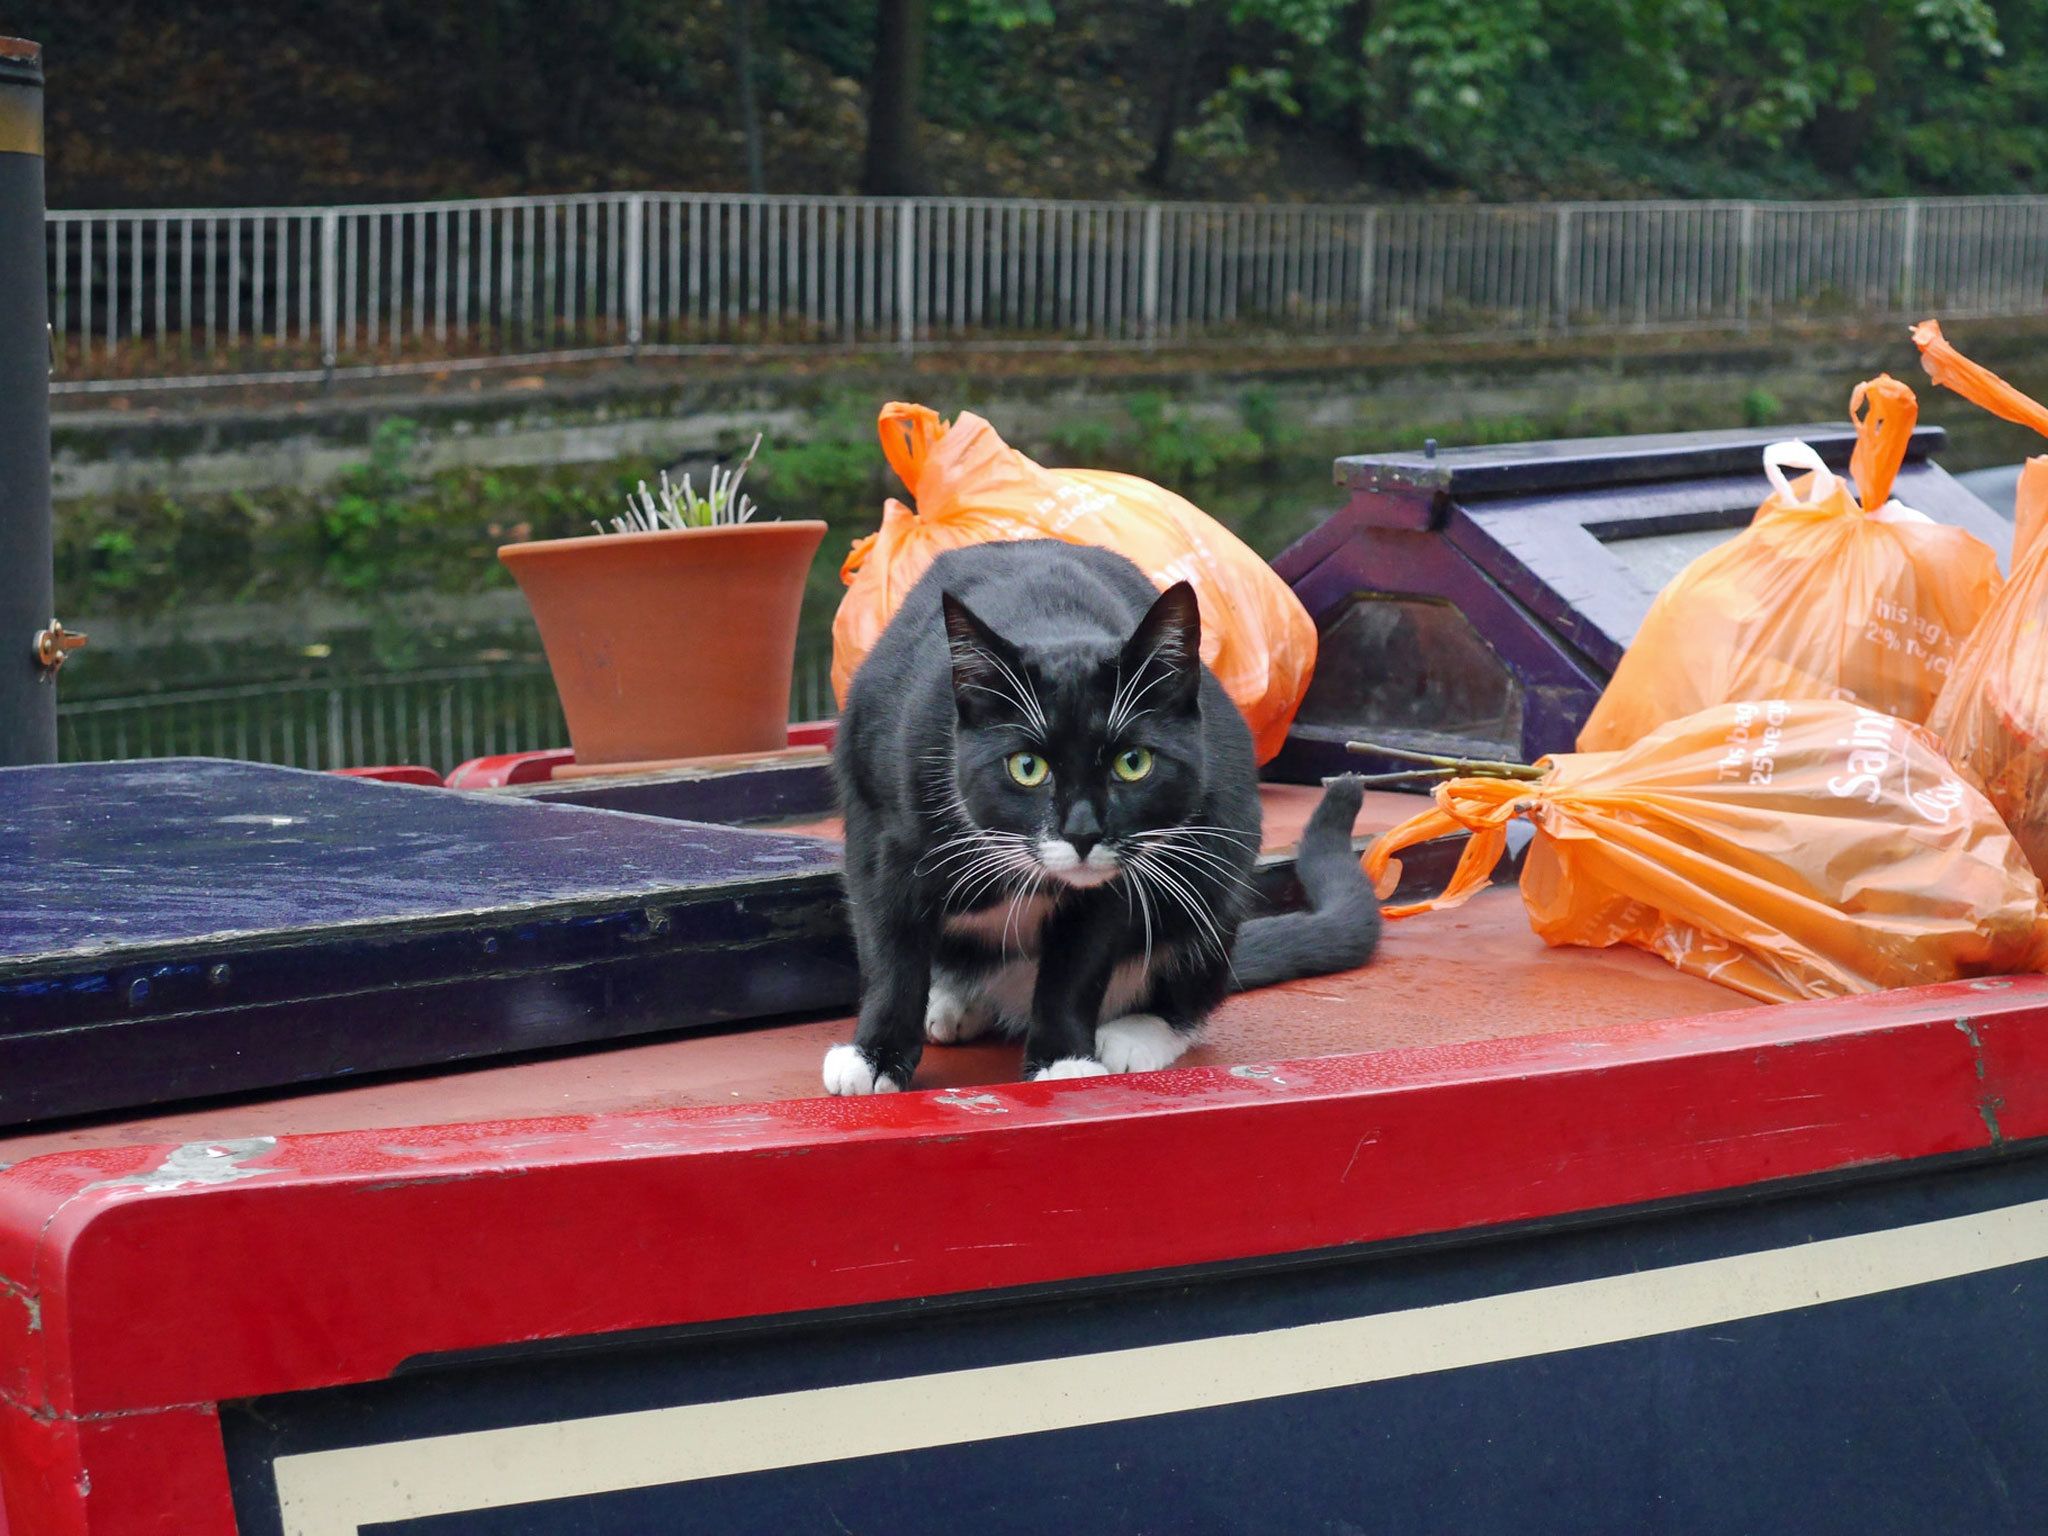 Cat on a canal boat